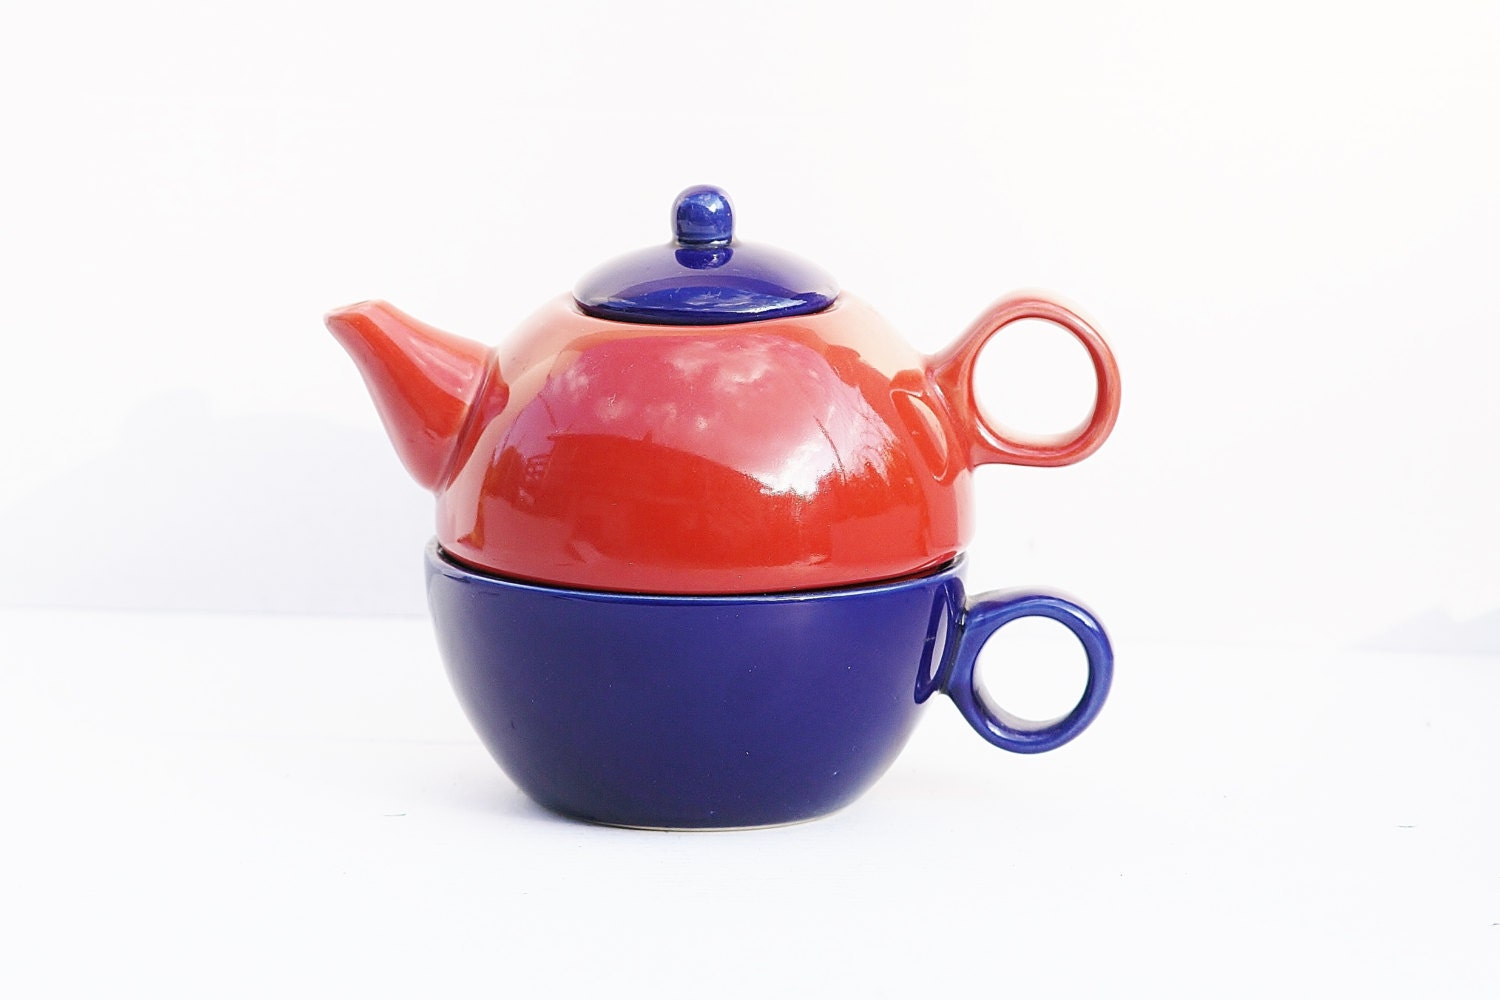 Teapot And Cup Set Colored Teapot And Cup Three Piece Teapot Set Red Teapot And Blue Cup Two In One Teapot And Cup Set